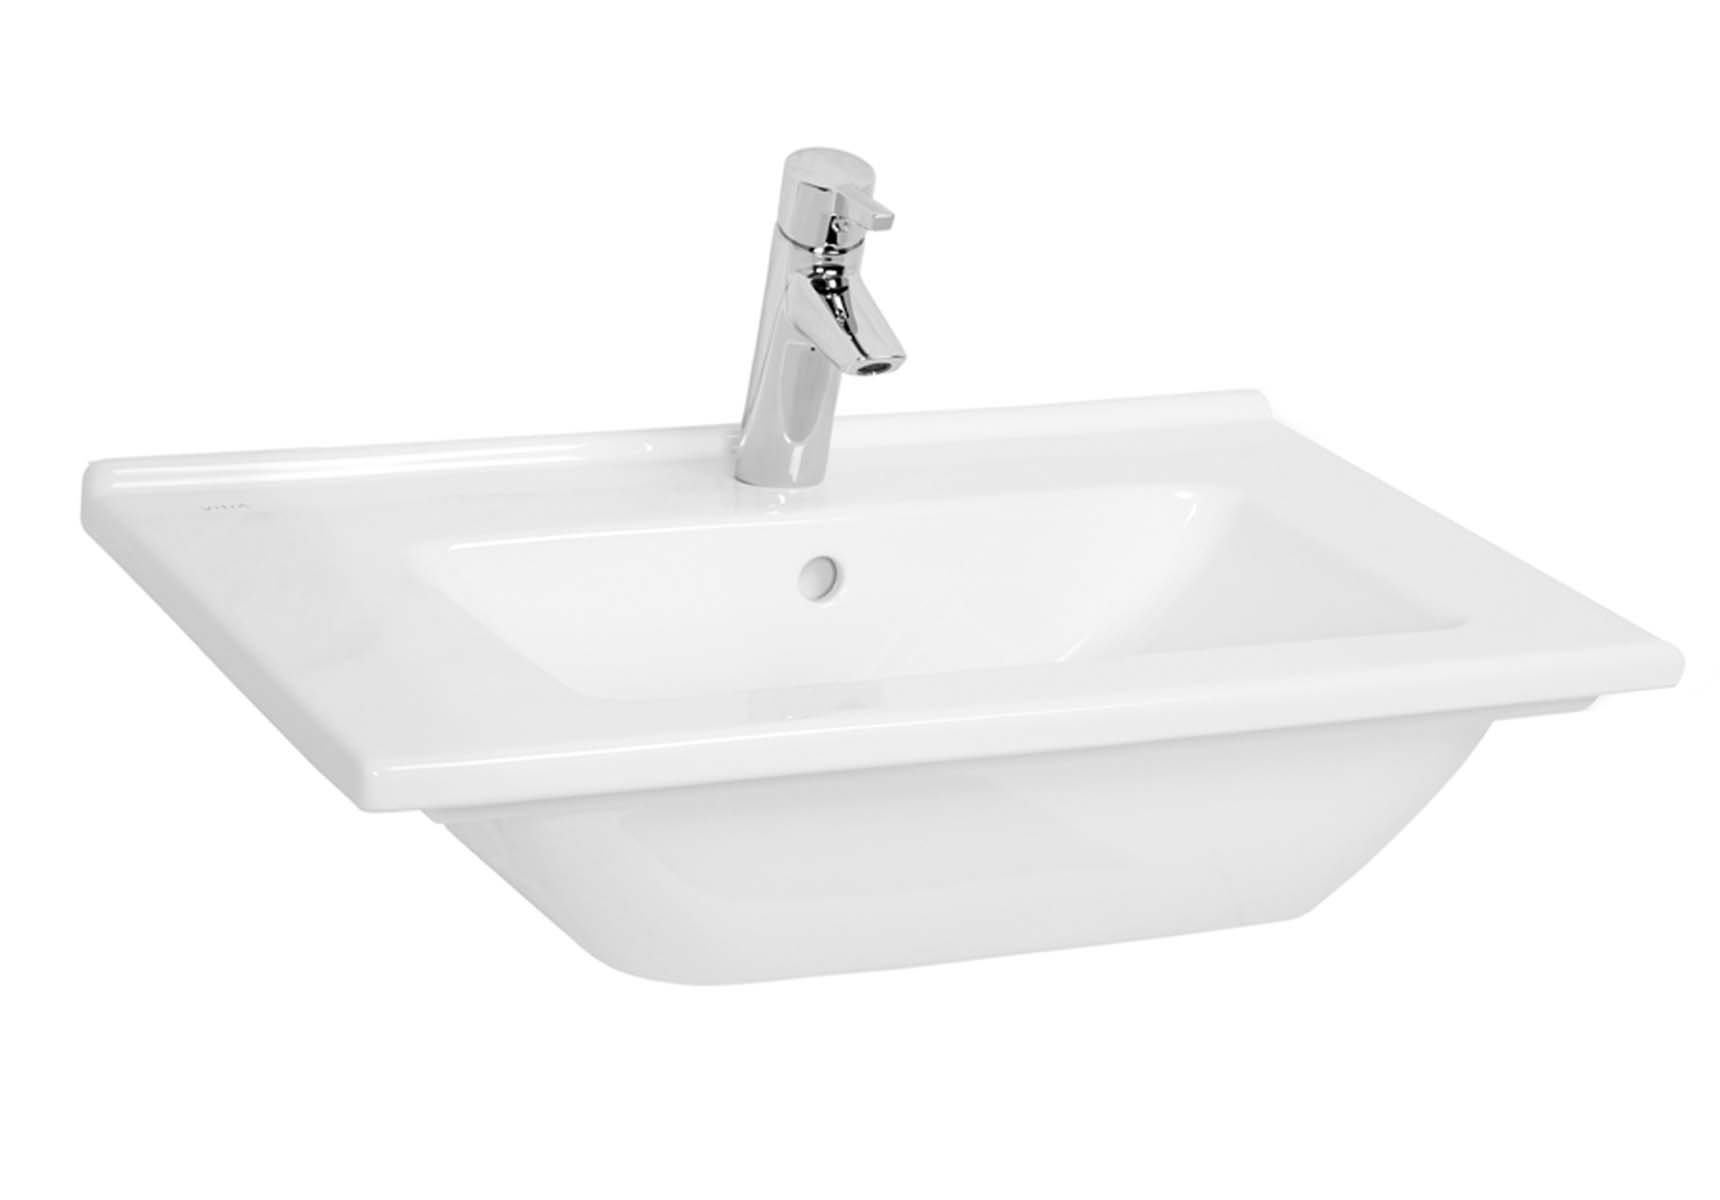 S50 Vanity Basin, 60cm with Middle Tap Hole, with Side Holes